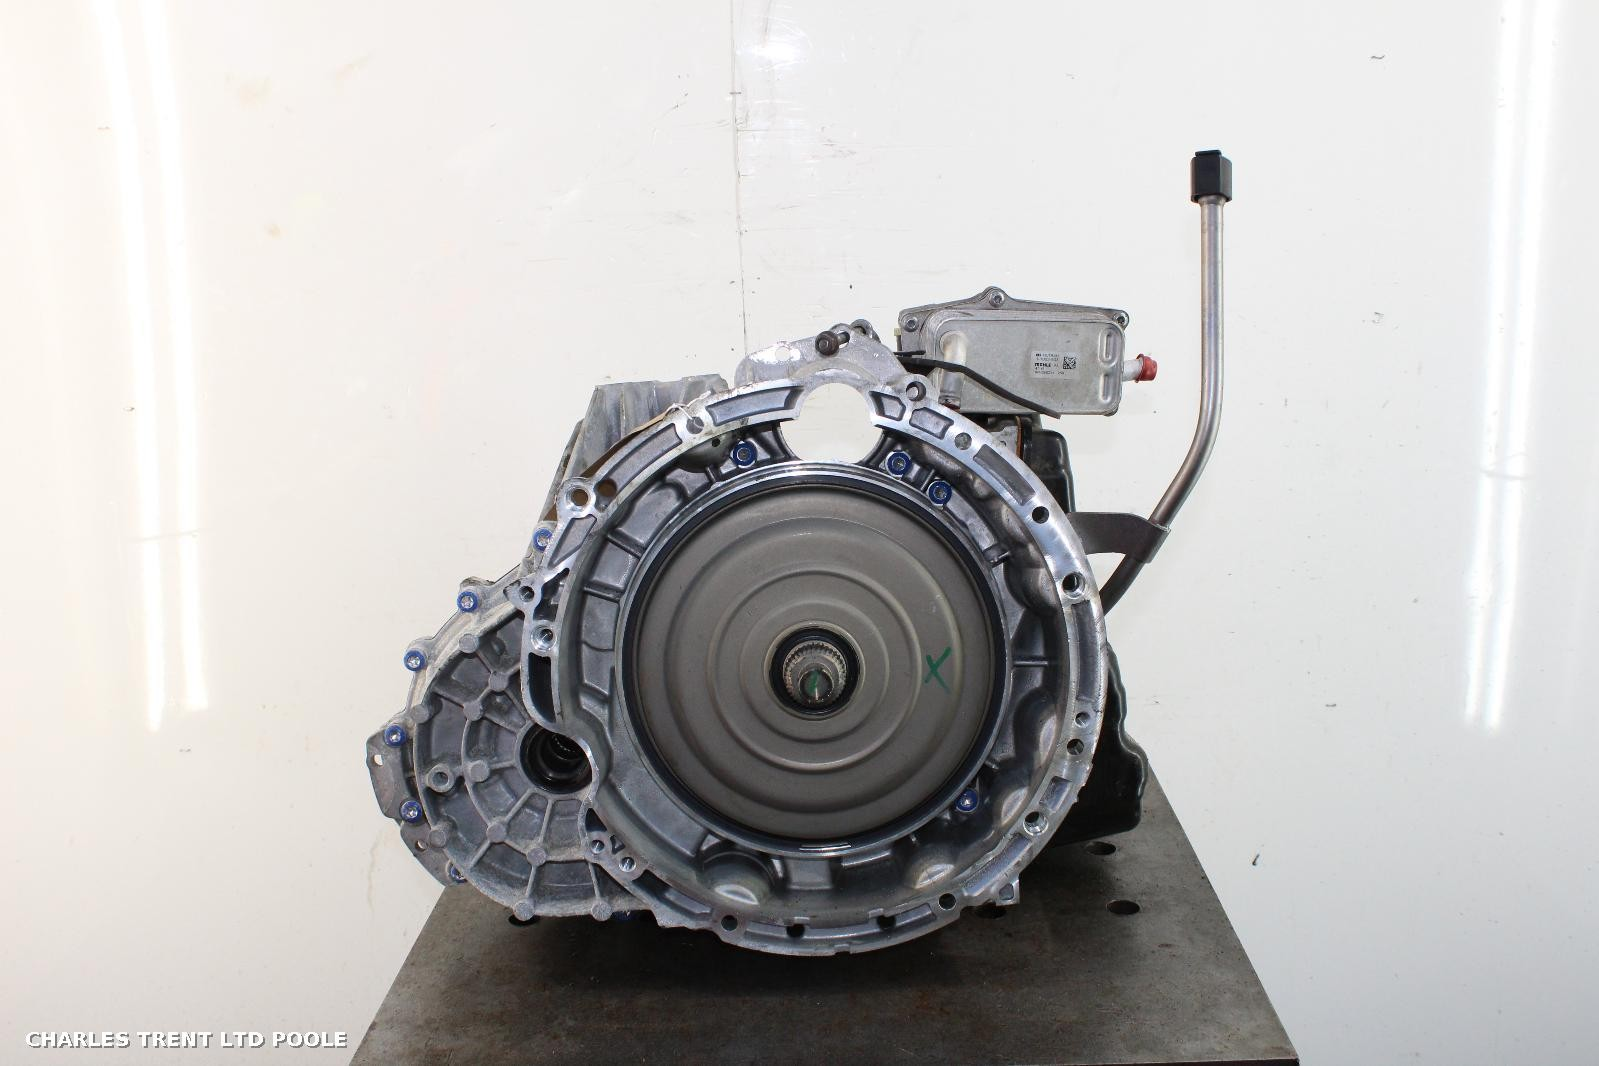 2015 - MERCEDES - GLA CLASS - GEARBOXES / TRANSMISSIONS